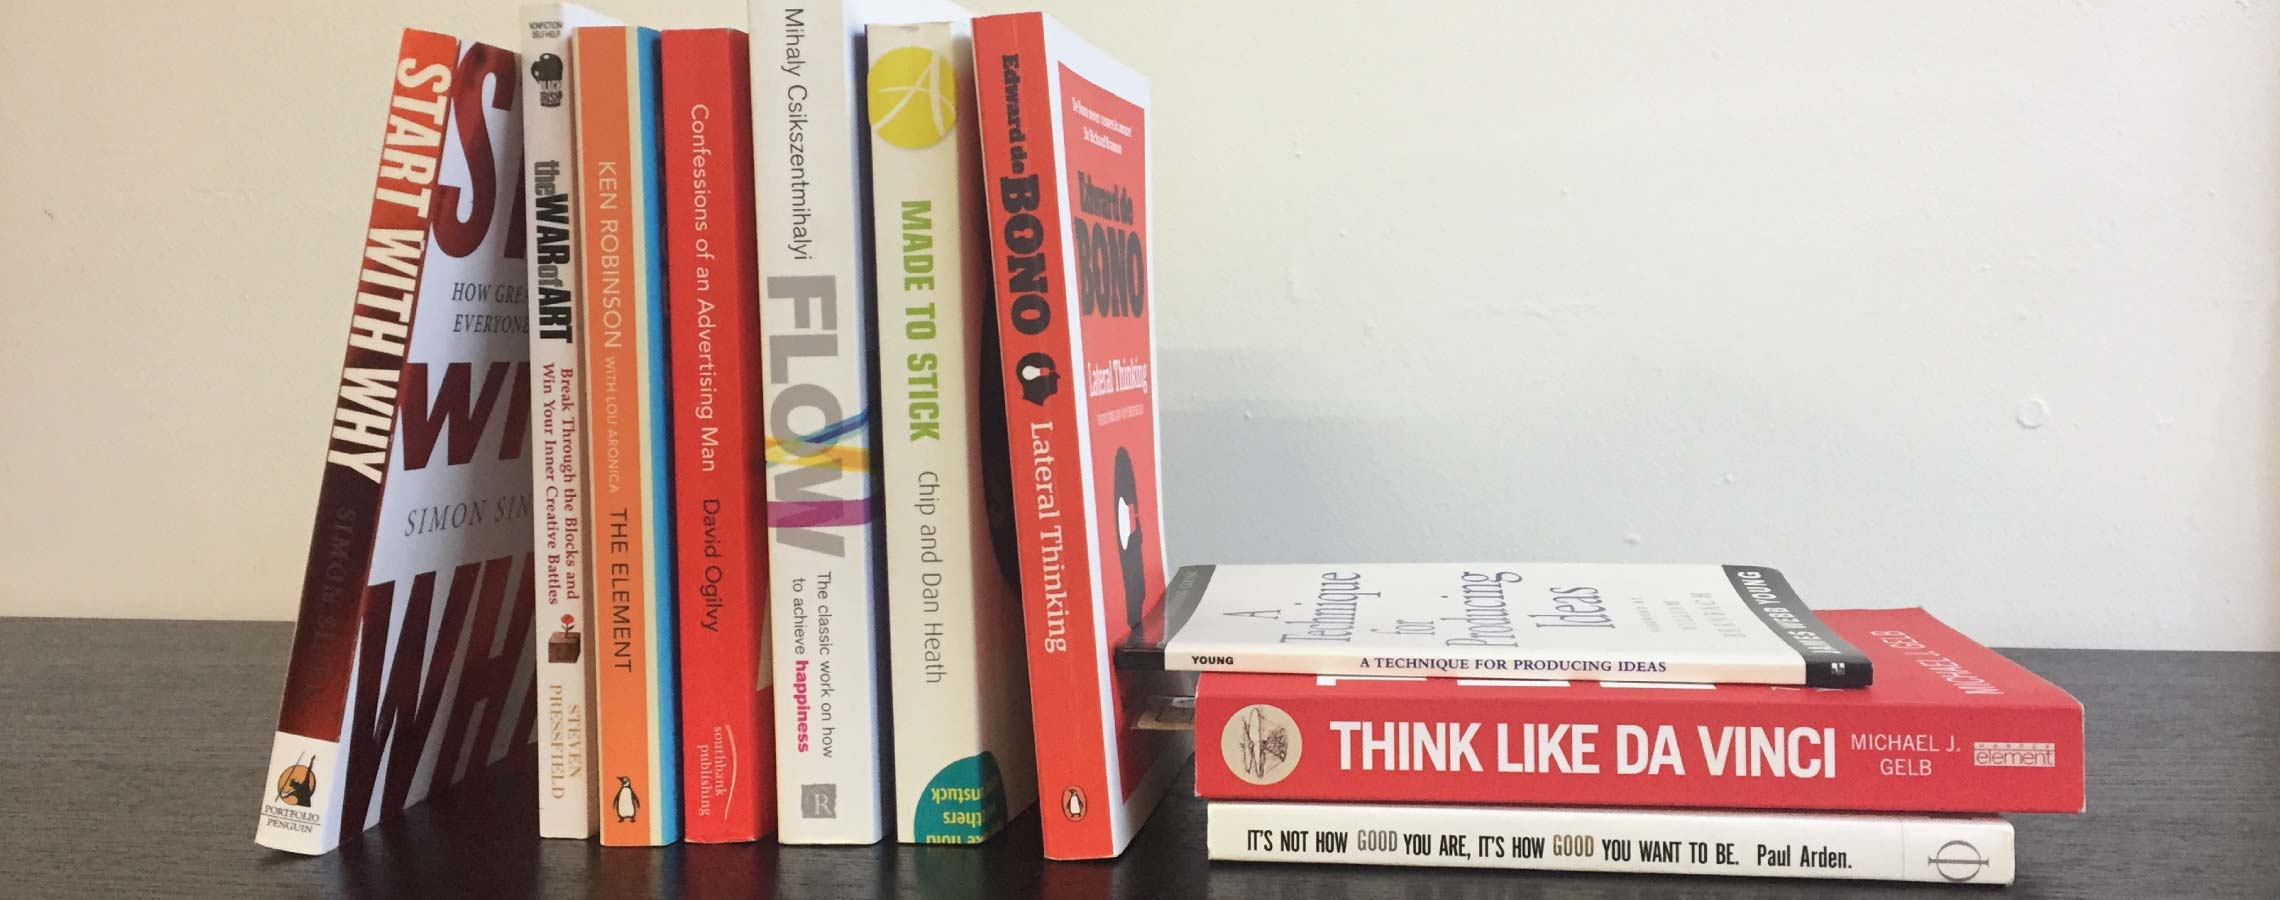 The 10 Best Books On Creativity The Essential List You Must Read